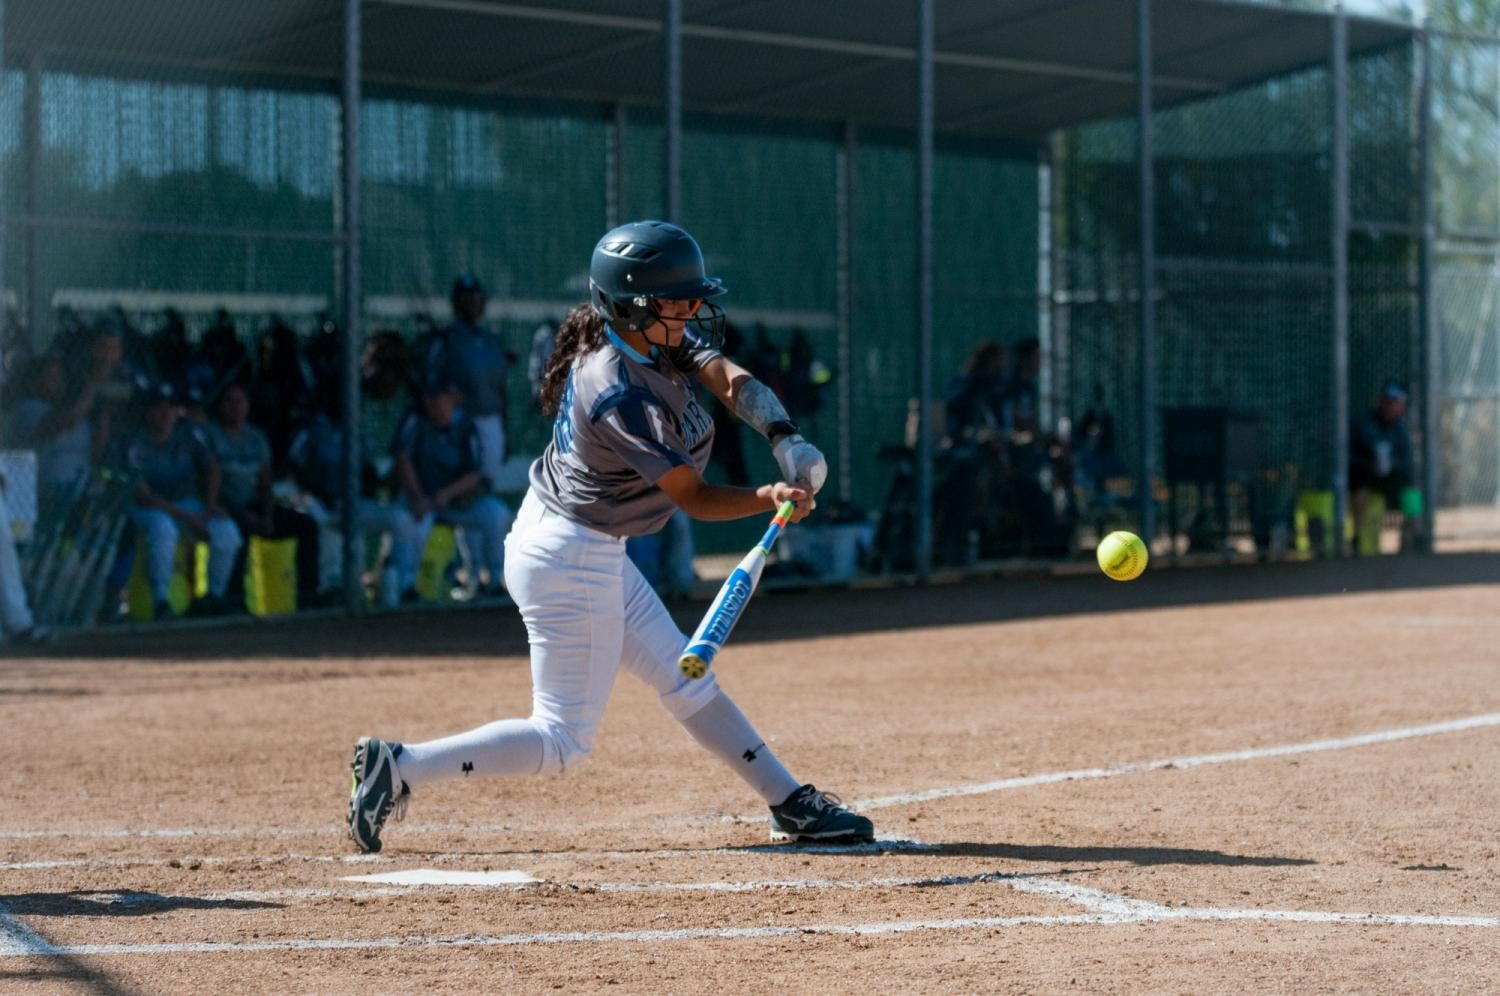 El+Camino+freshman+utility+player+Karla+Calderon+swings+at+a+pitch+against+L.A.+Harbor+College+on+Tuesday%2C+March+28+at+the+EC+softball+field.+Photo+credit%3A+Osvaldo+Deras